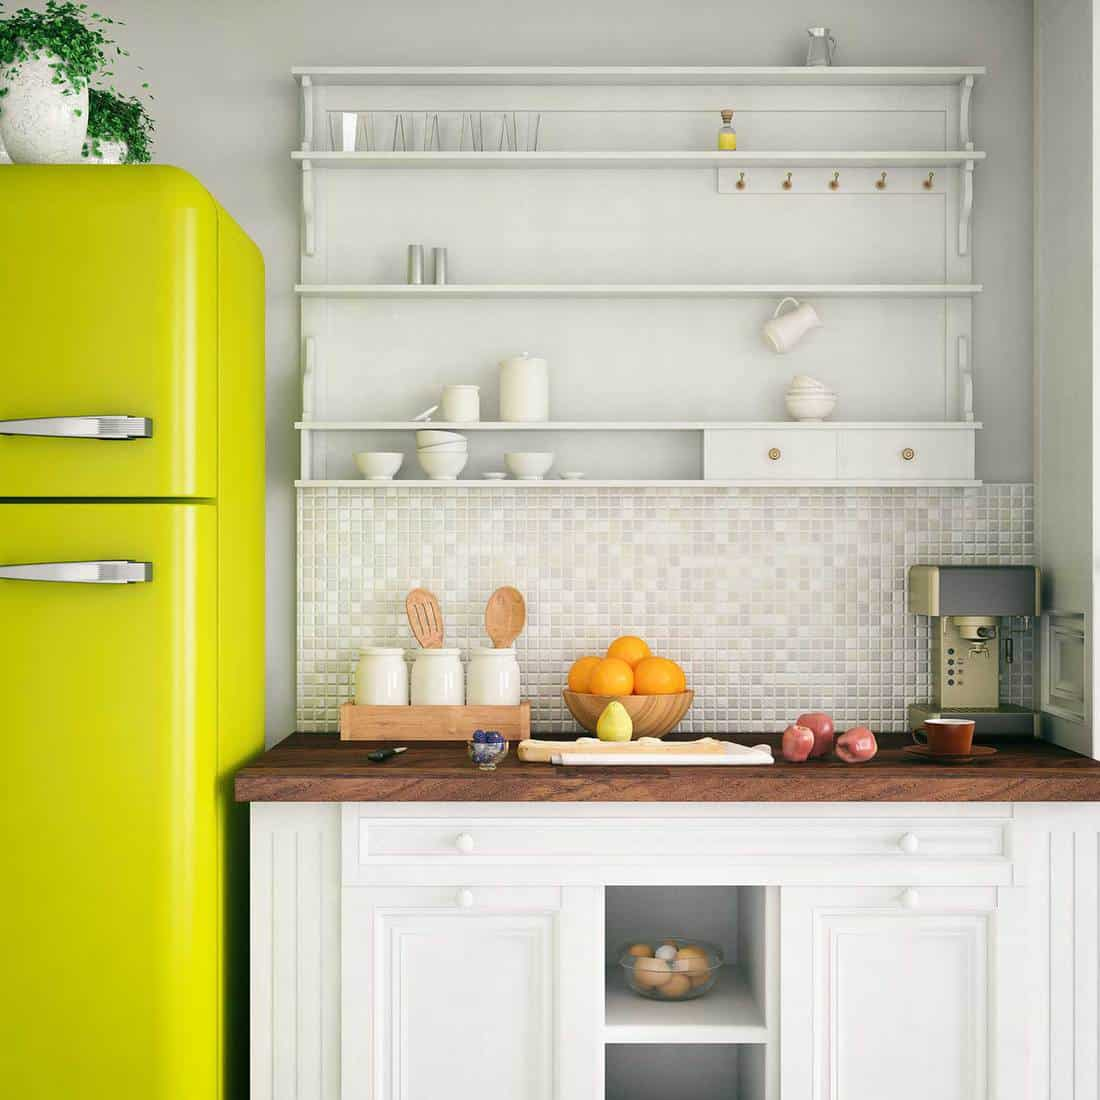 Modern house kitchen with yellow fridge, wooden countertop and bowl of oranges